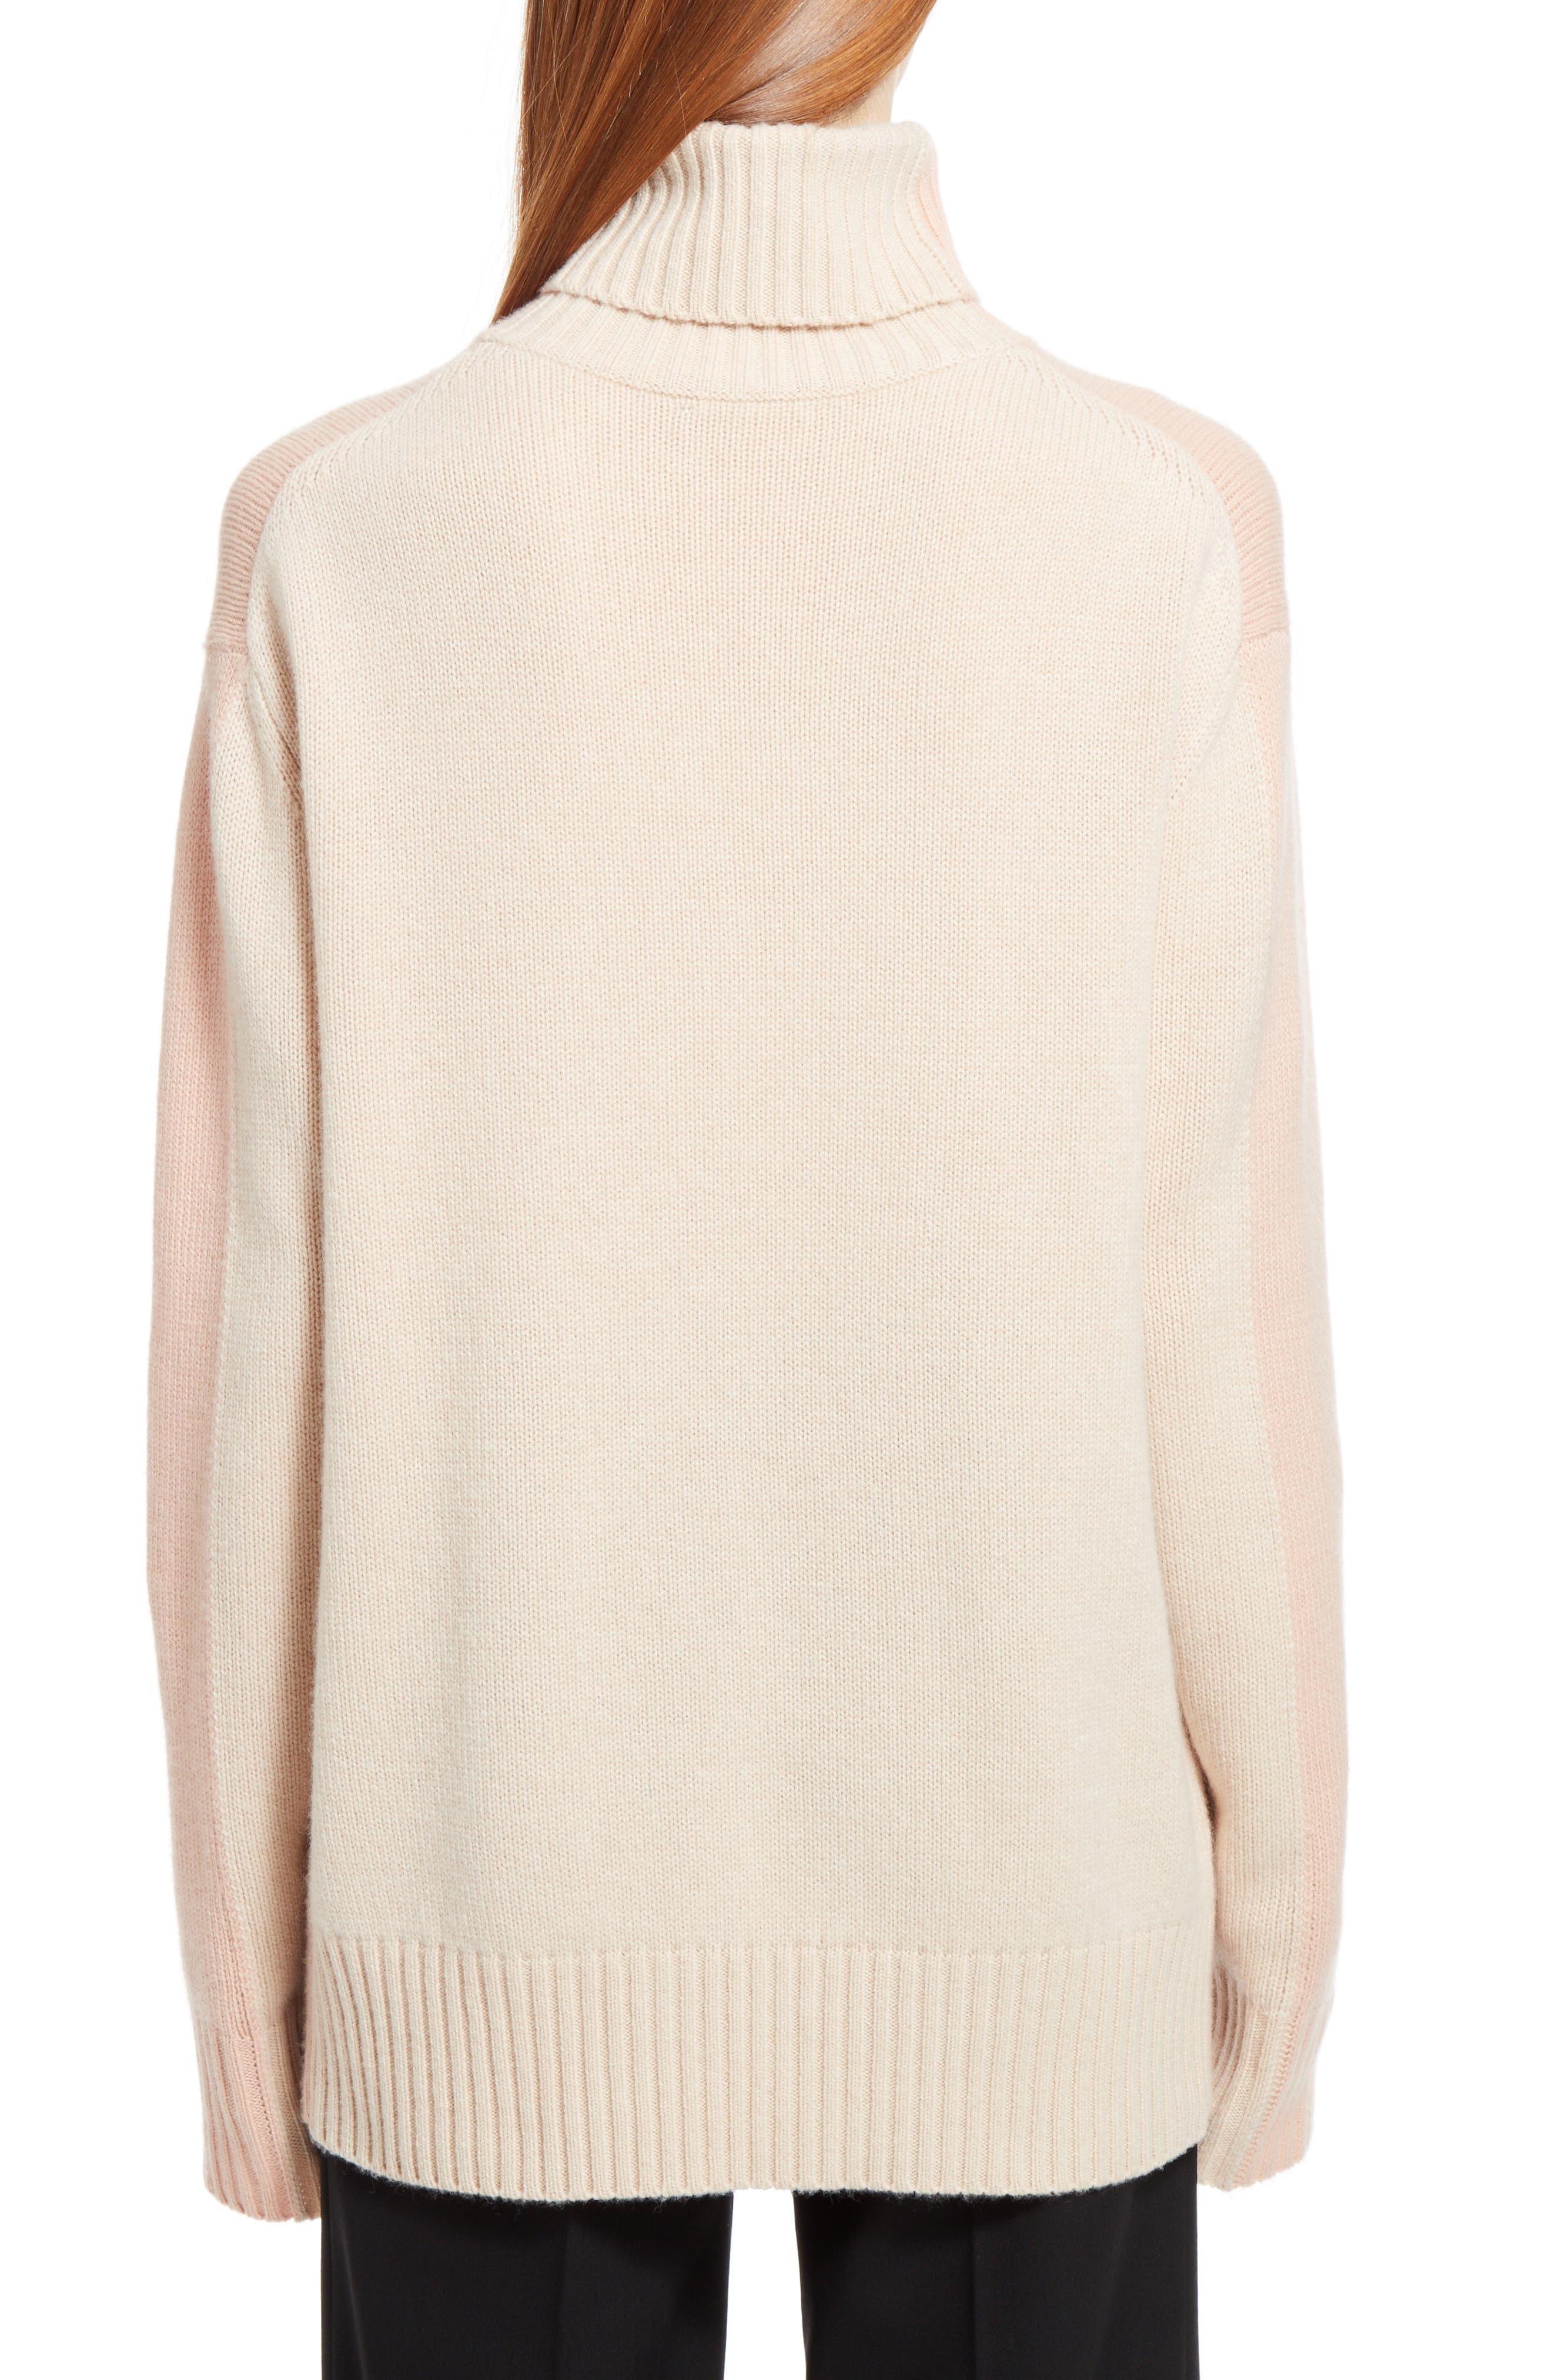 Colorblock Cashmere Turtleneck Sweater,                             Alternate thumbnail 2, color,                             Pink/ Beige